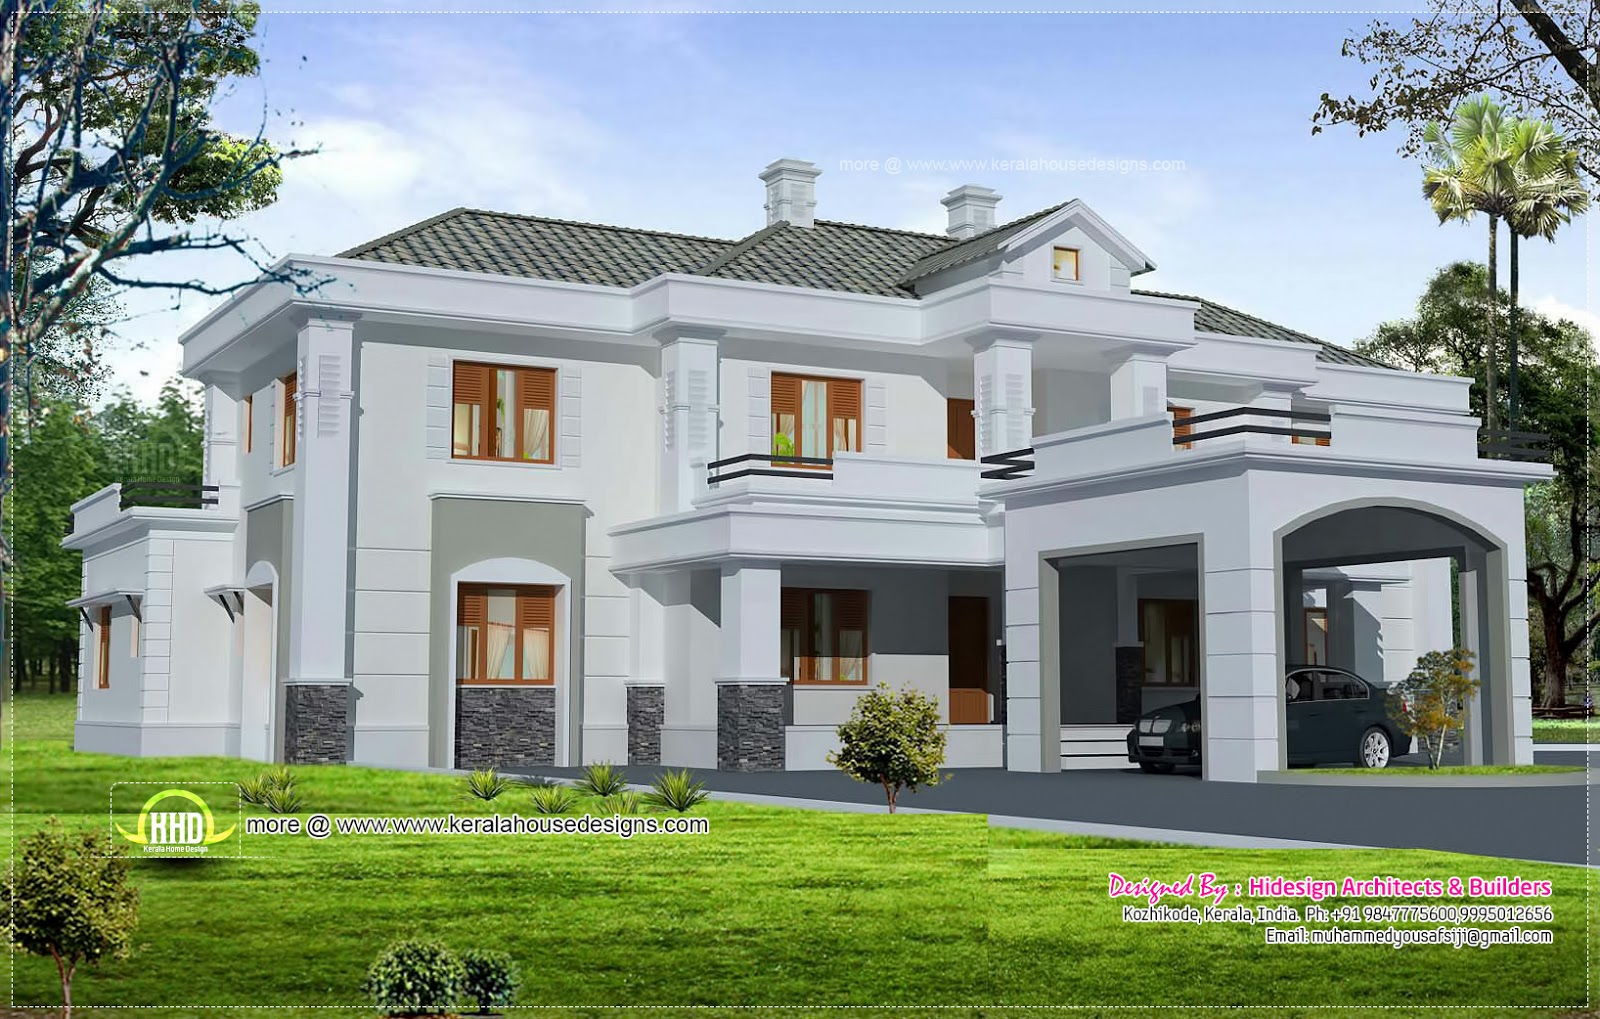 Luxury colonial style home design with court yard kerala for Colonial style house plans kerala